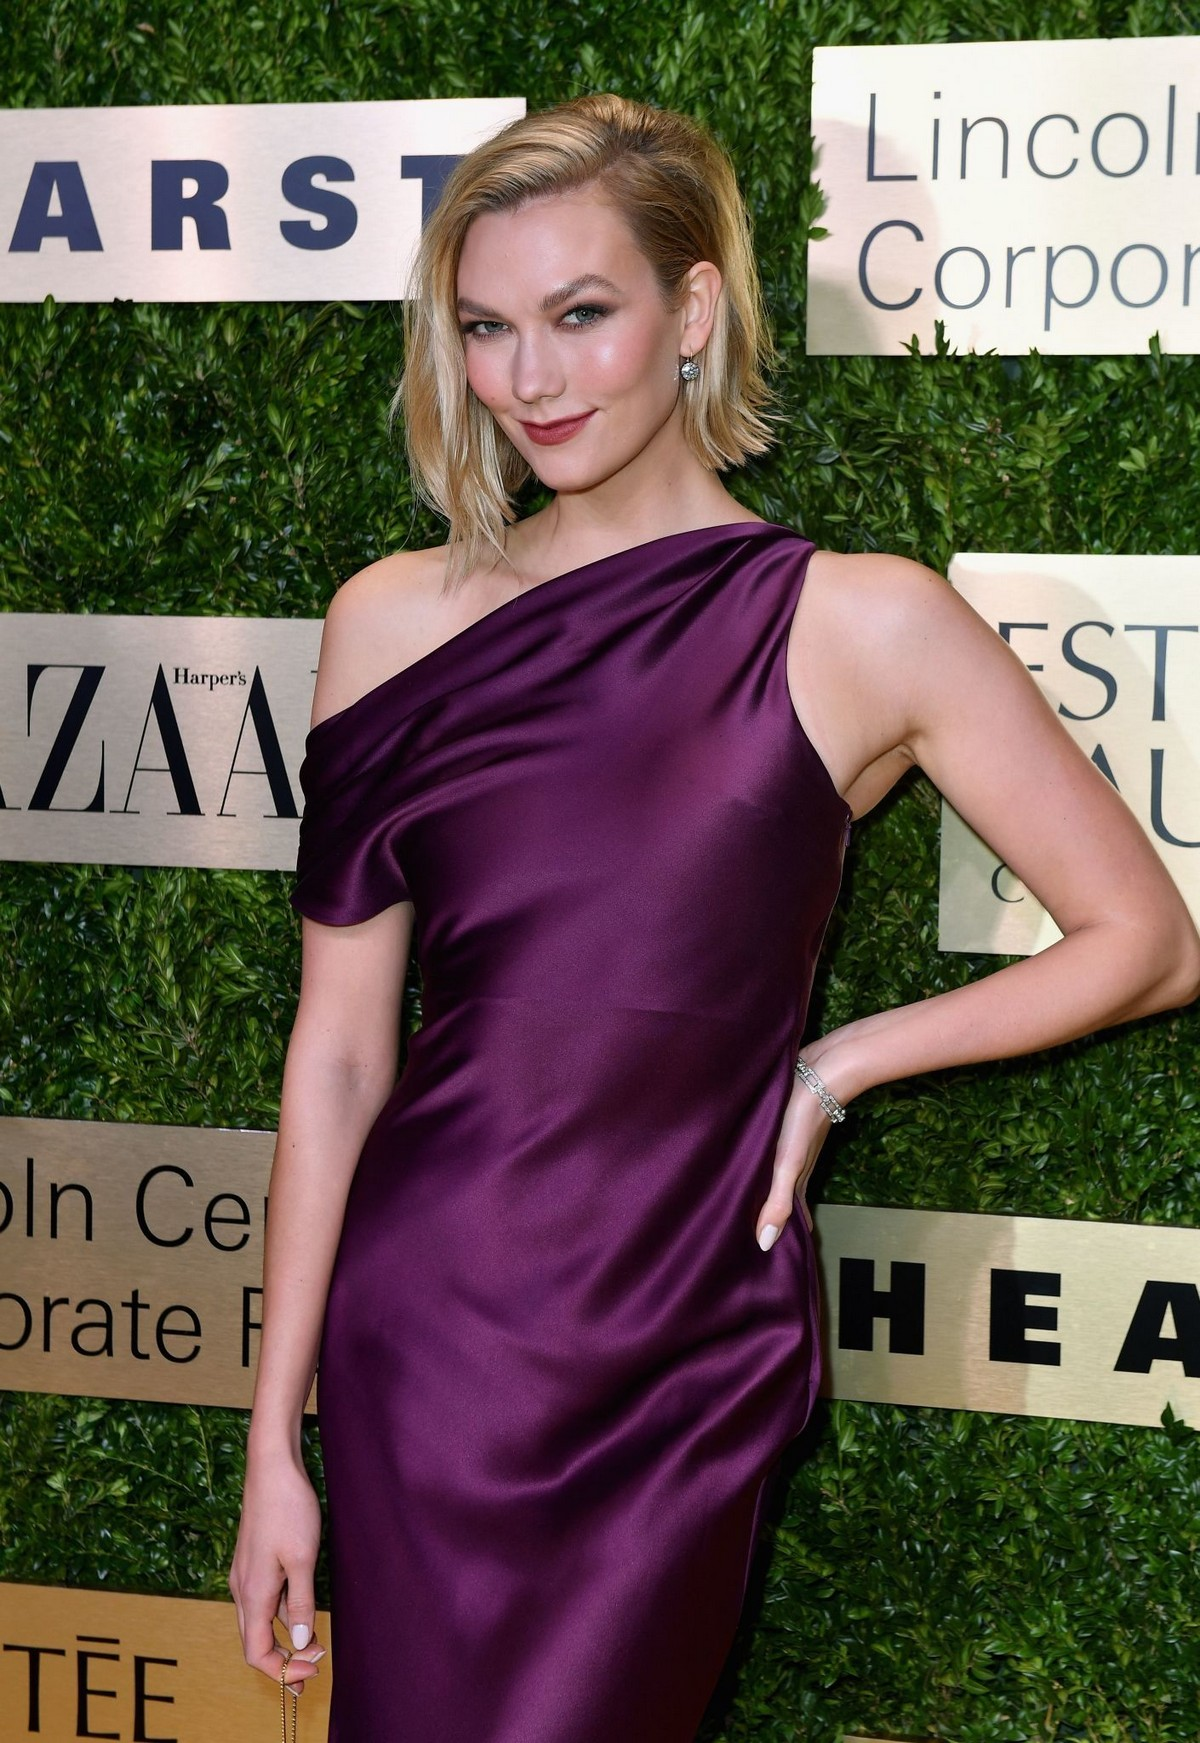 Karlie Kloss attends Lincoln Center Corporate Fashion Fund Gala in New York City 2019/11/18 12